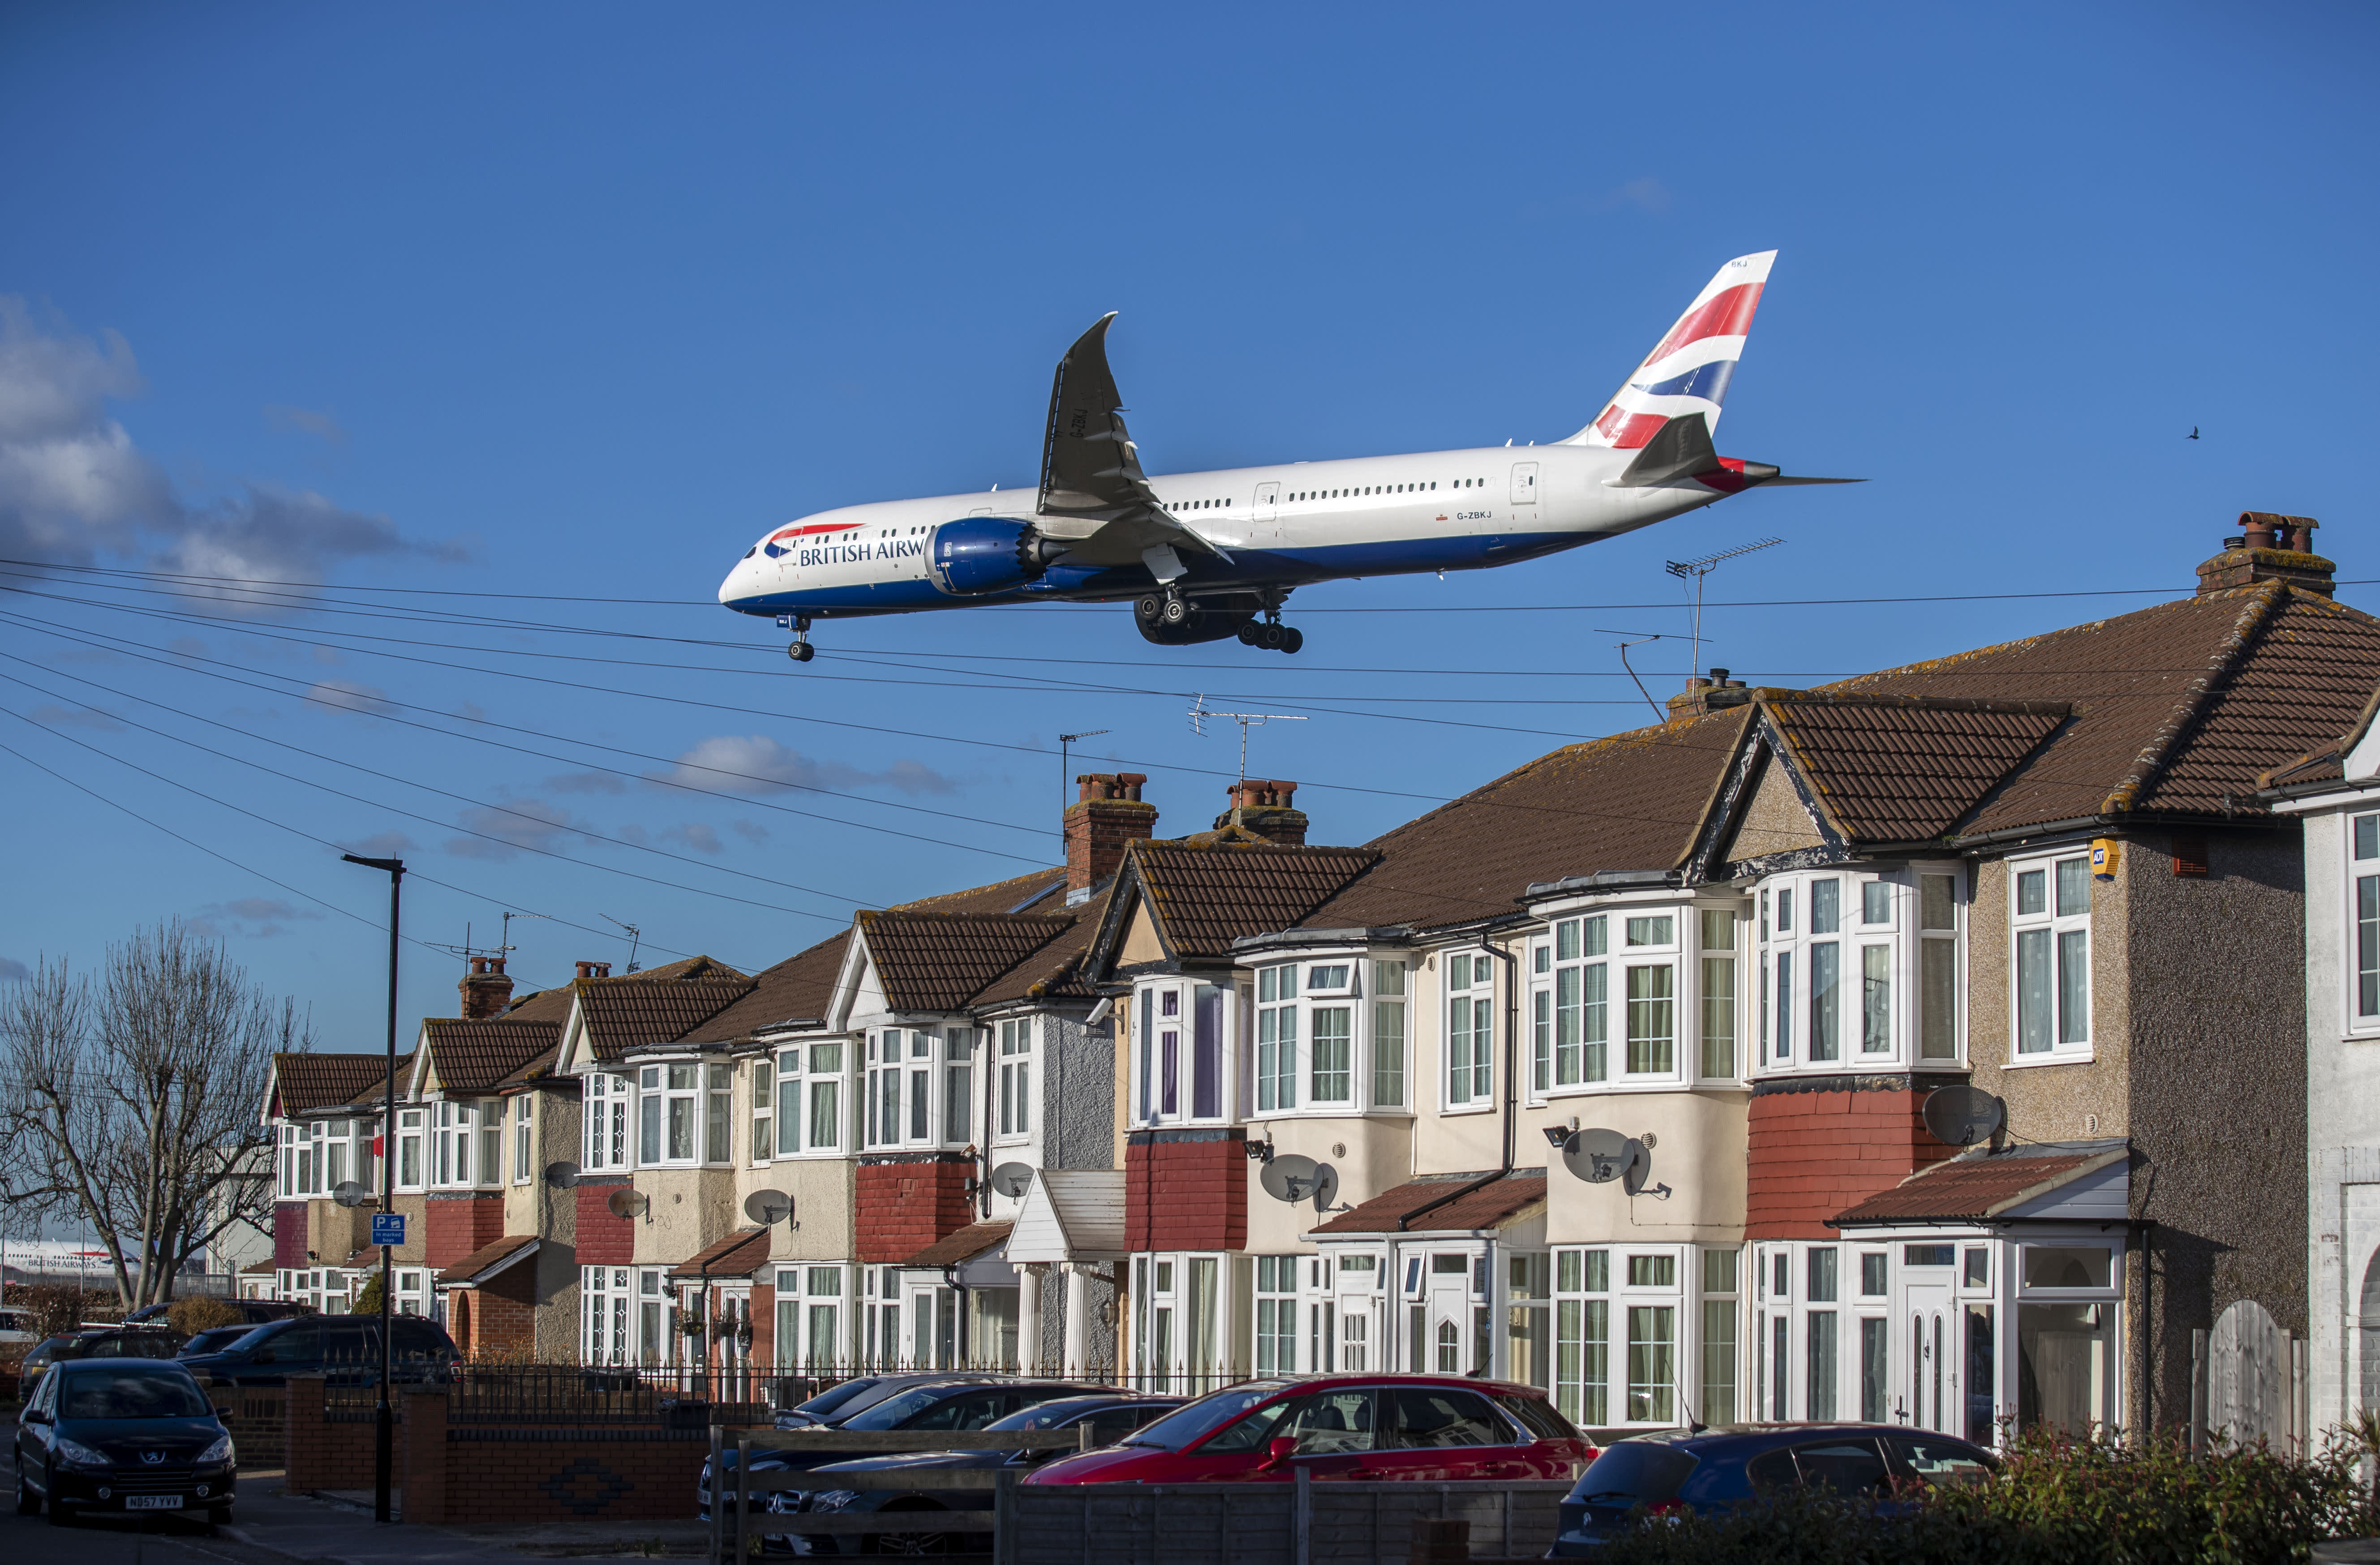 UK airport Heathrow set for a third runway after court blocks legal challenge